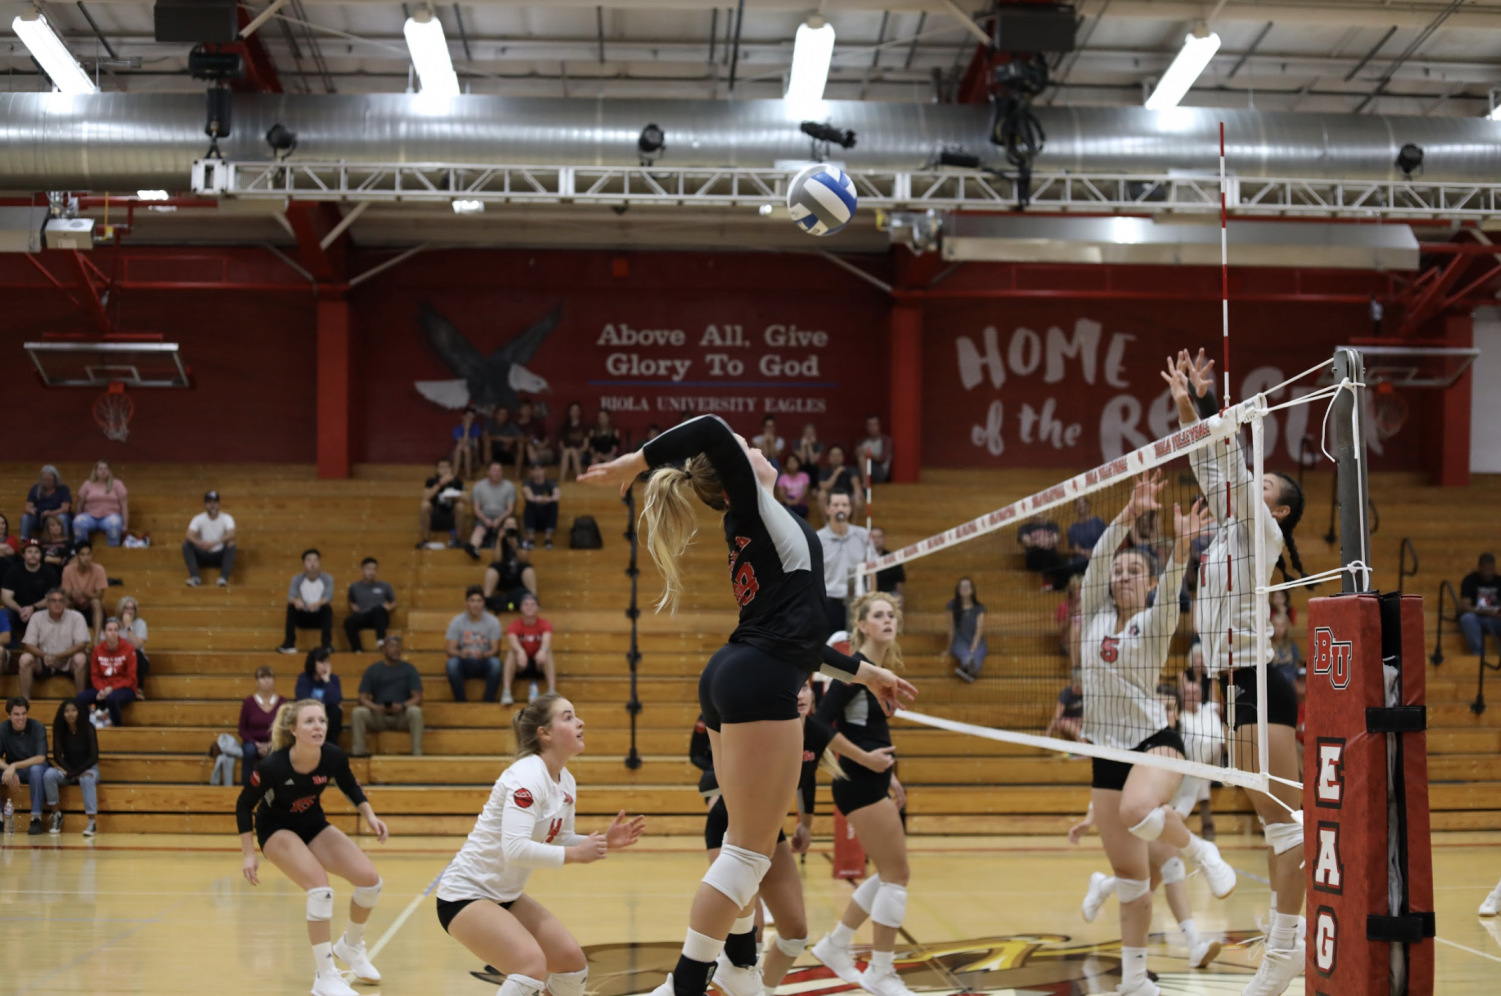 Biola Volleyball player jumps to spike the ball.